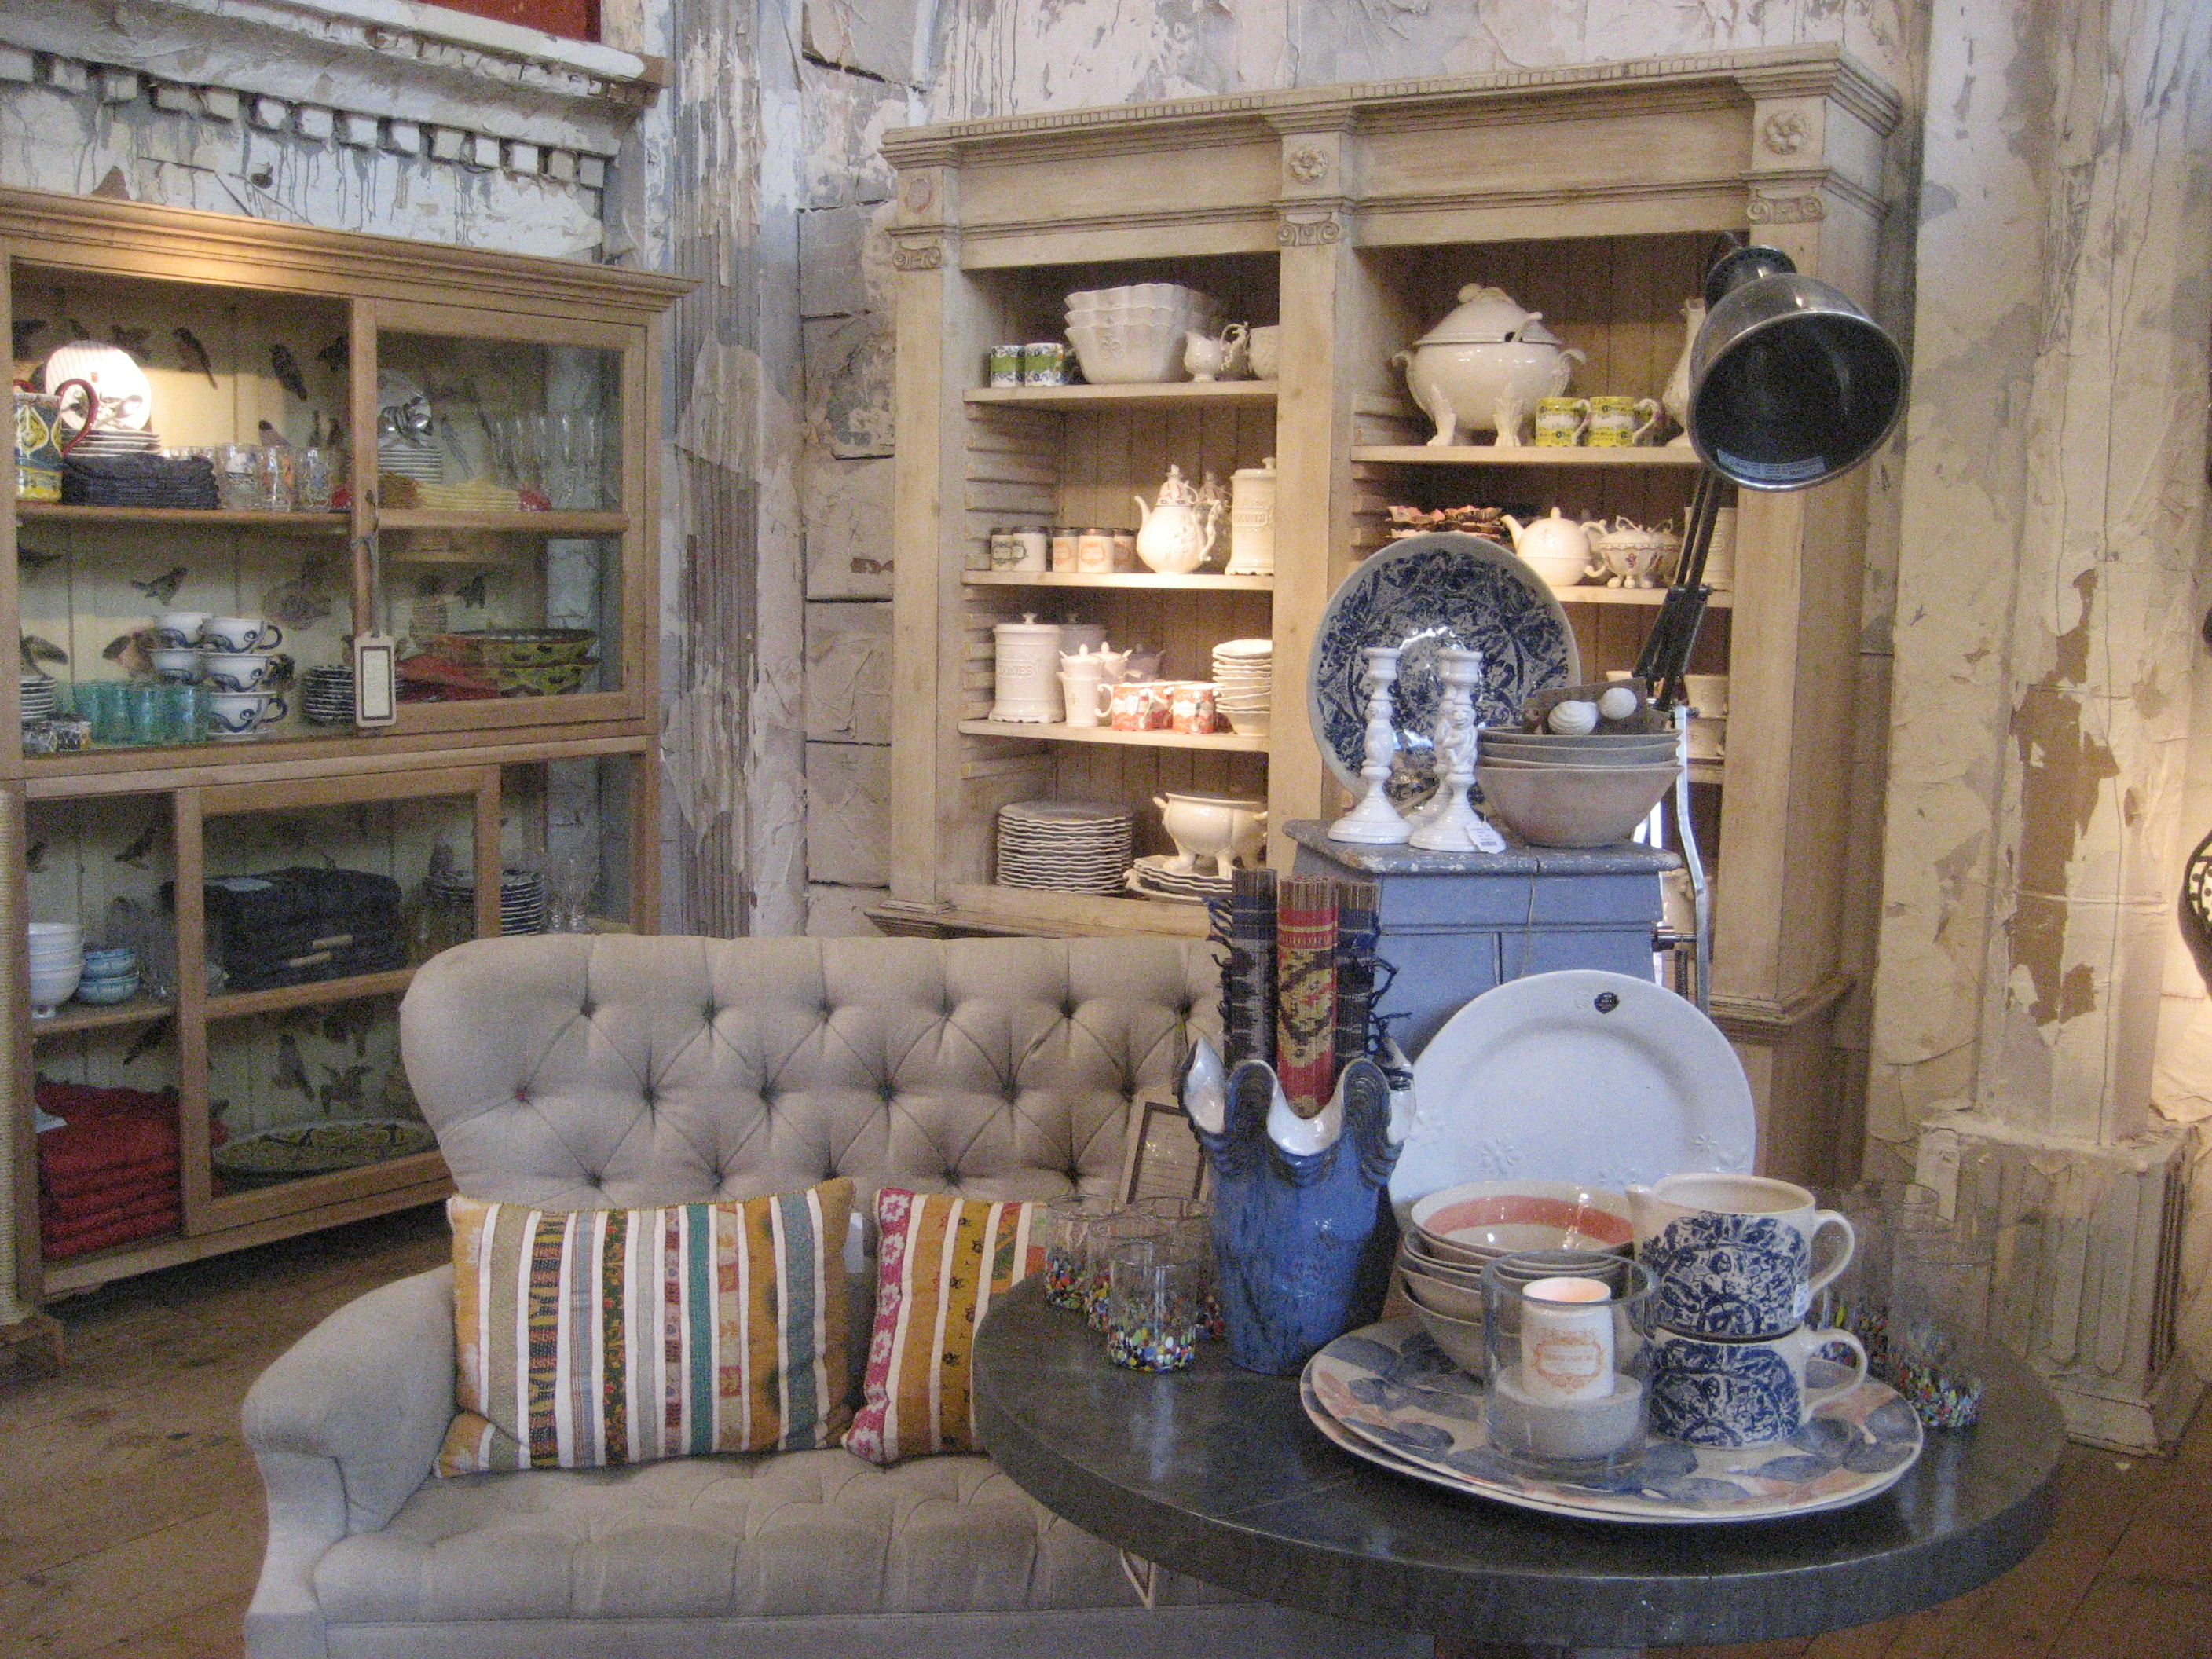 anthropologie style furniture. They Anthropologie Style Furniture